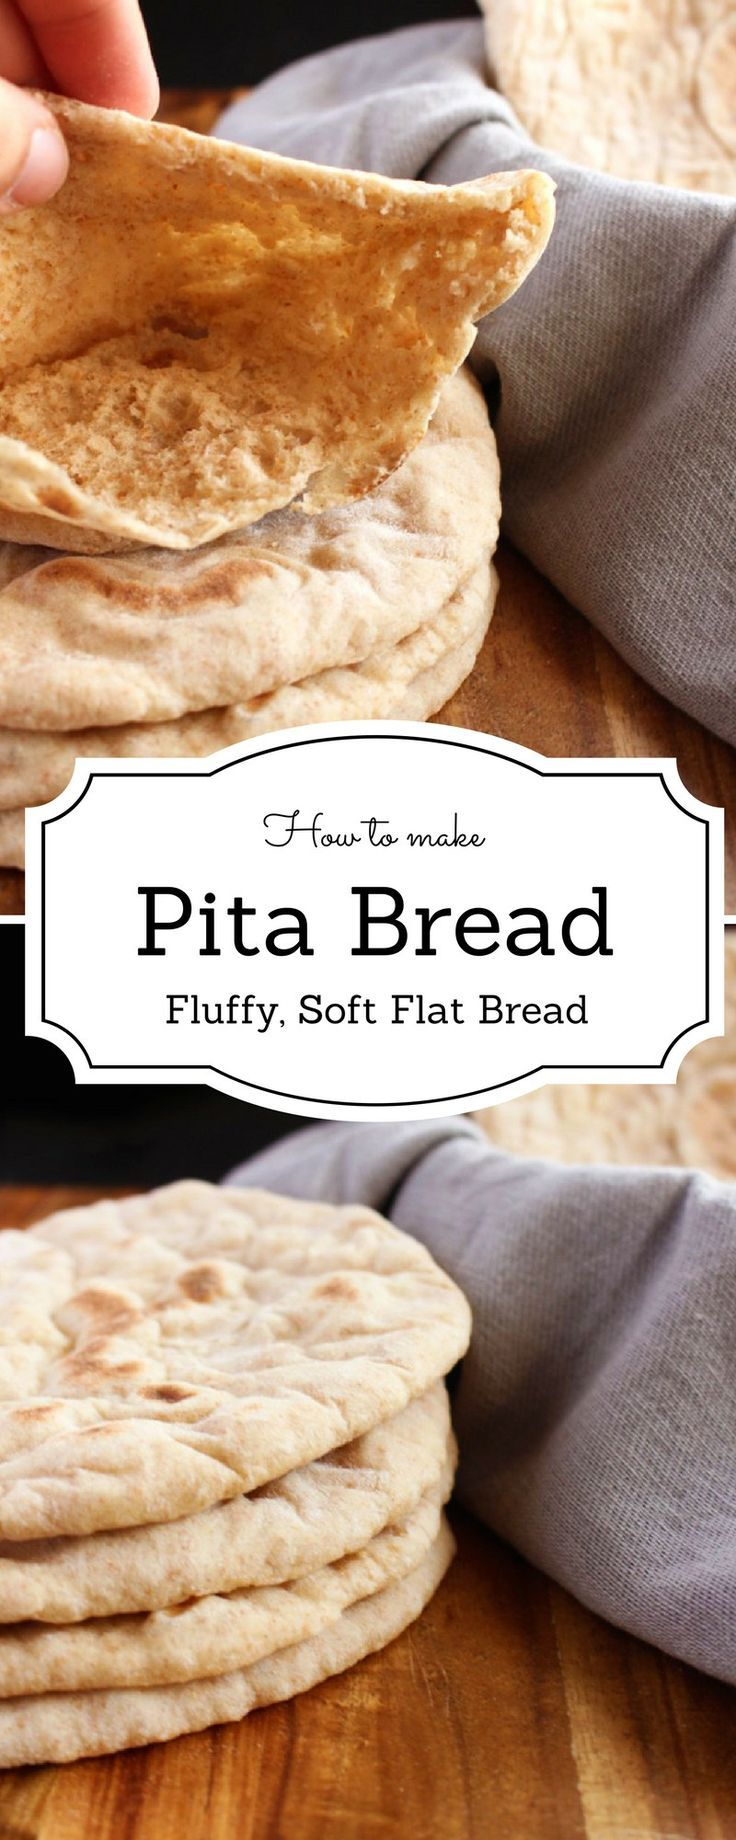 How to make Pita Bread - This recipe is both easy and delicious. Using a simple dough, you can learn to make the best pita ! -http://Brokefoodies.com